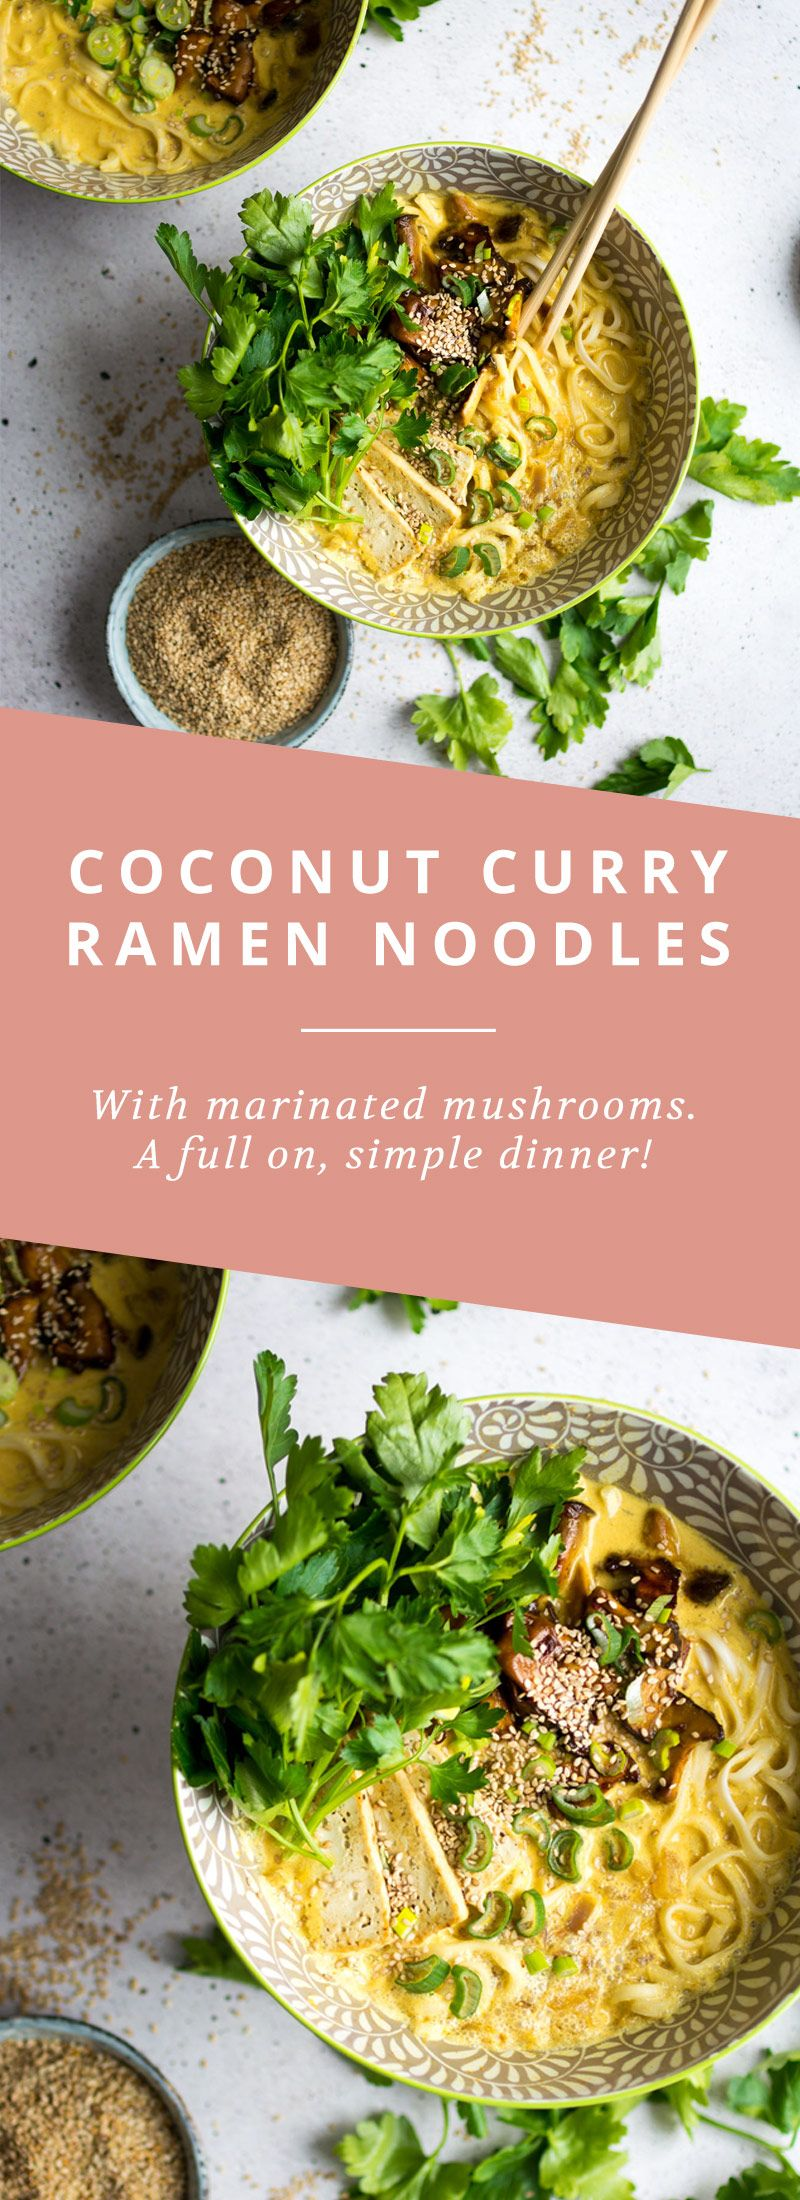 Coconut Curry Ramen Noodles with Marinated Mushrooms | Lauren Caris Cooks